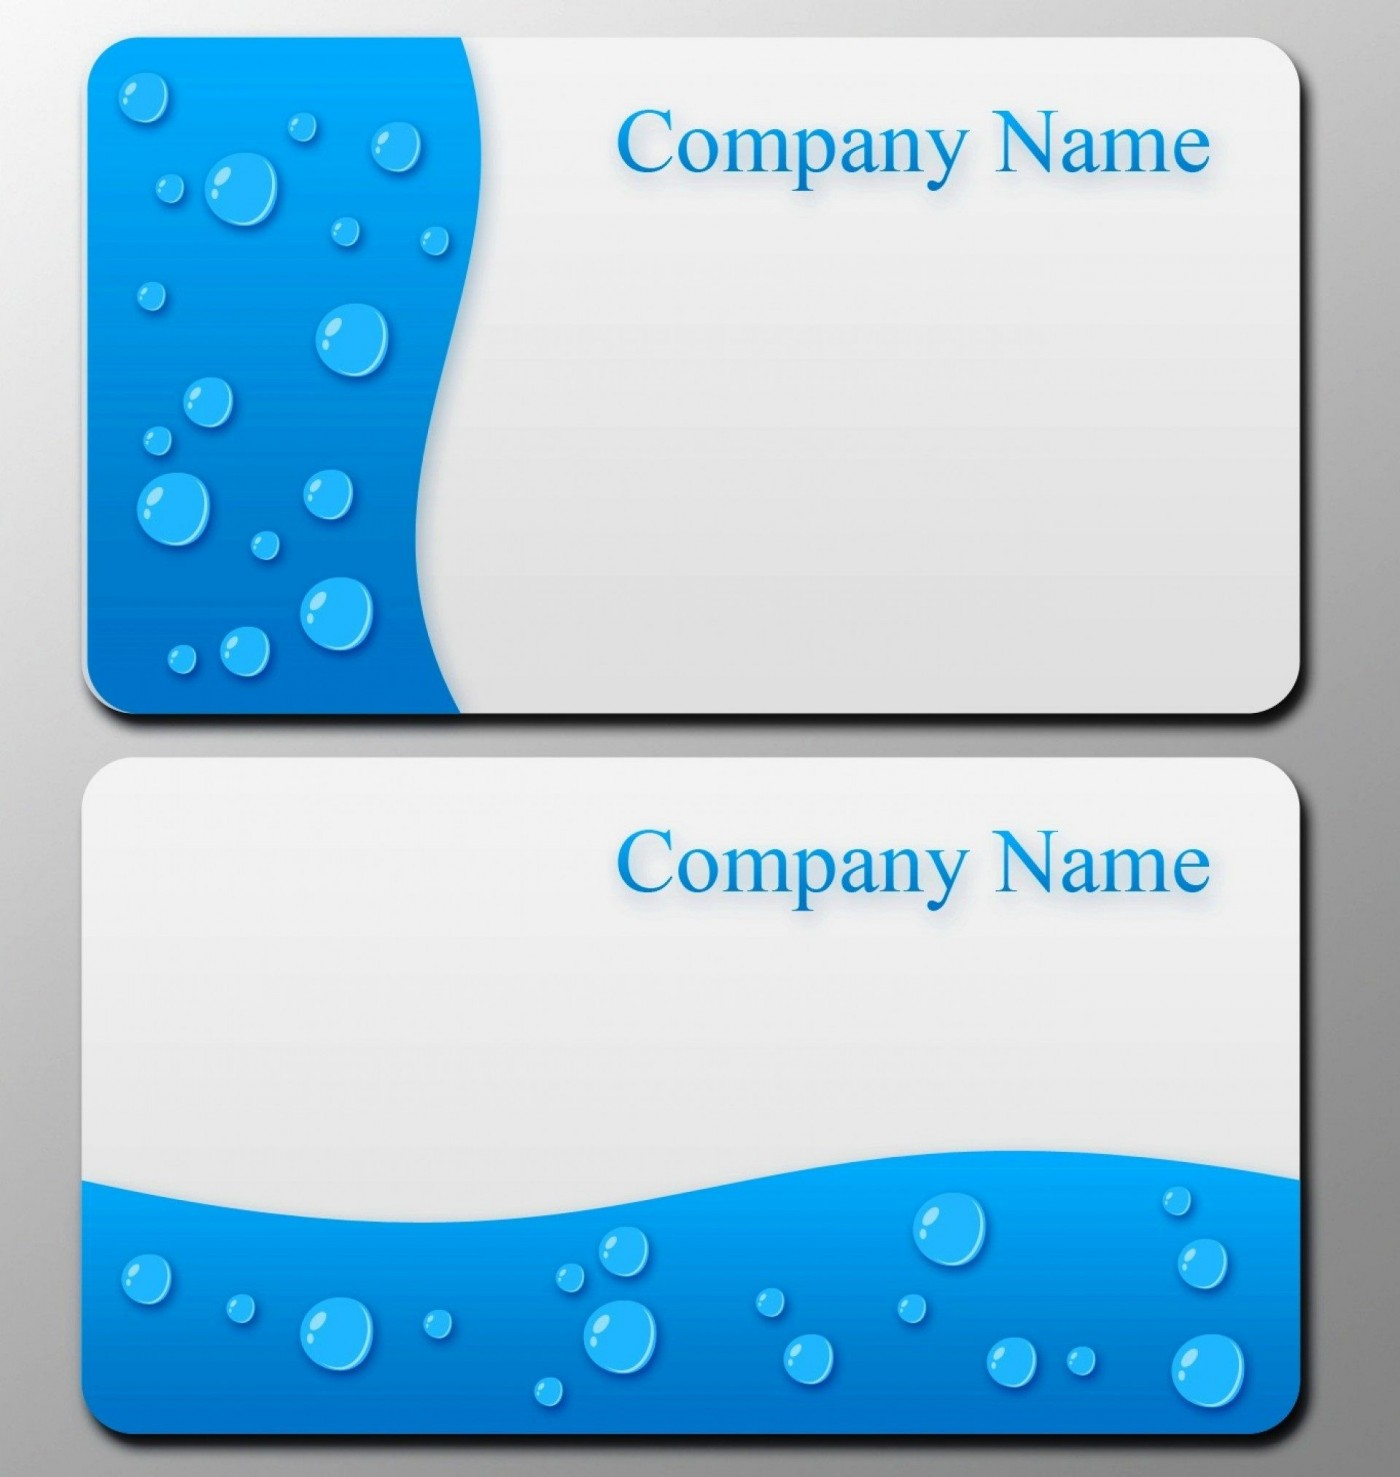 008 Astounding Blank Busines Card Template Photoshop Image  Free Download Psd1400